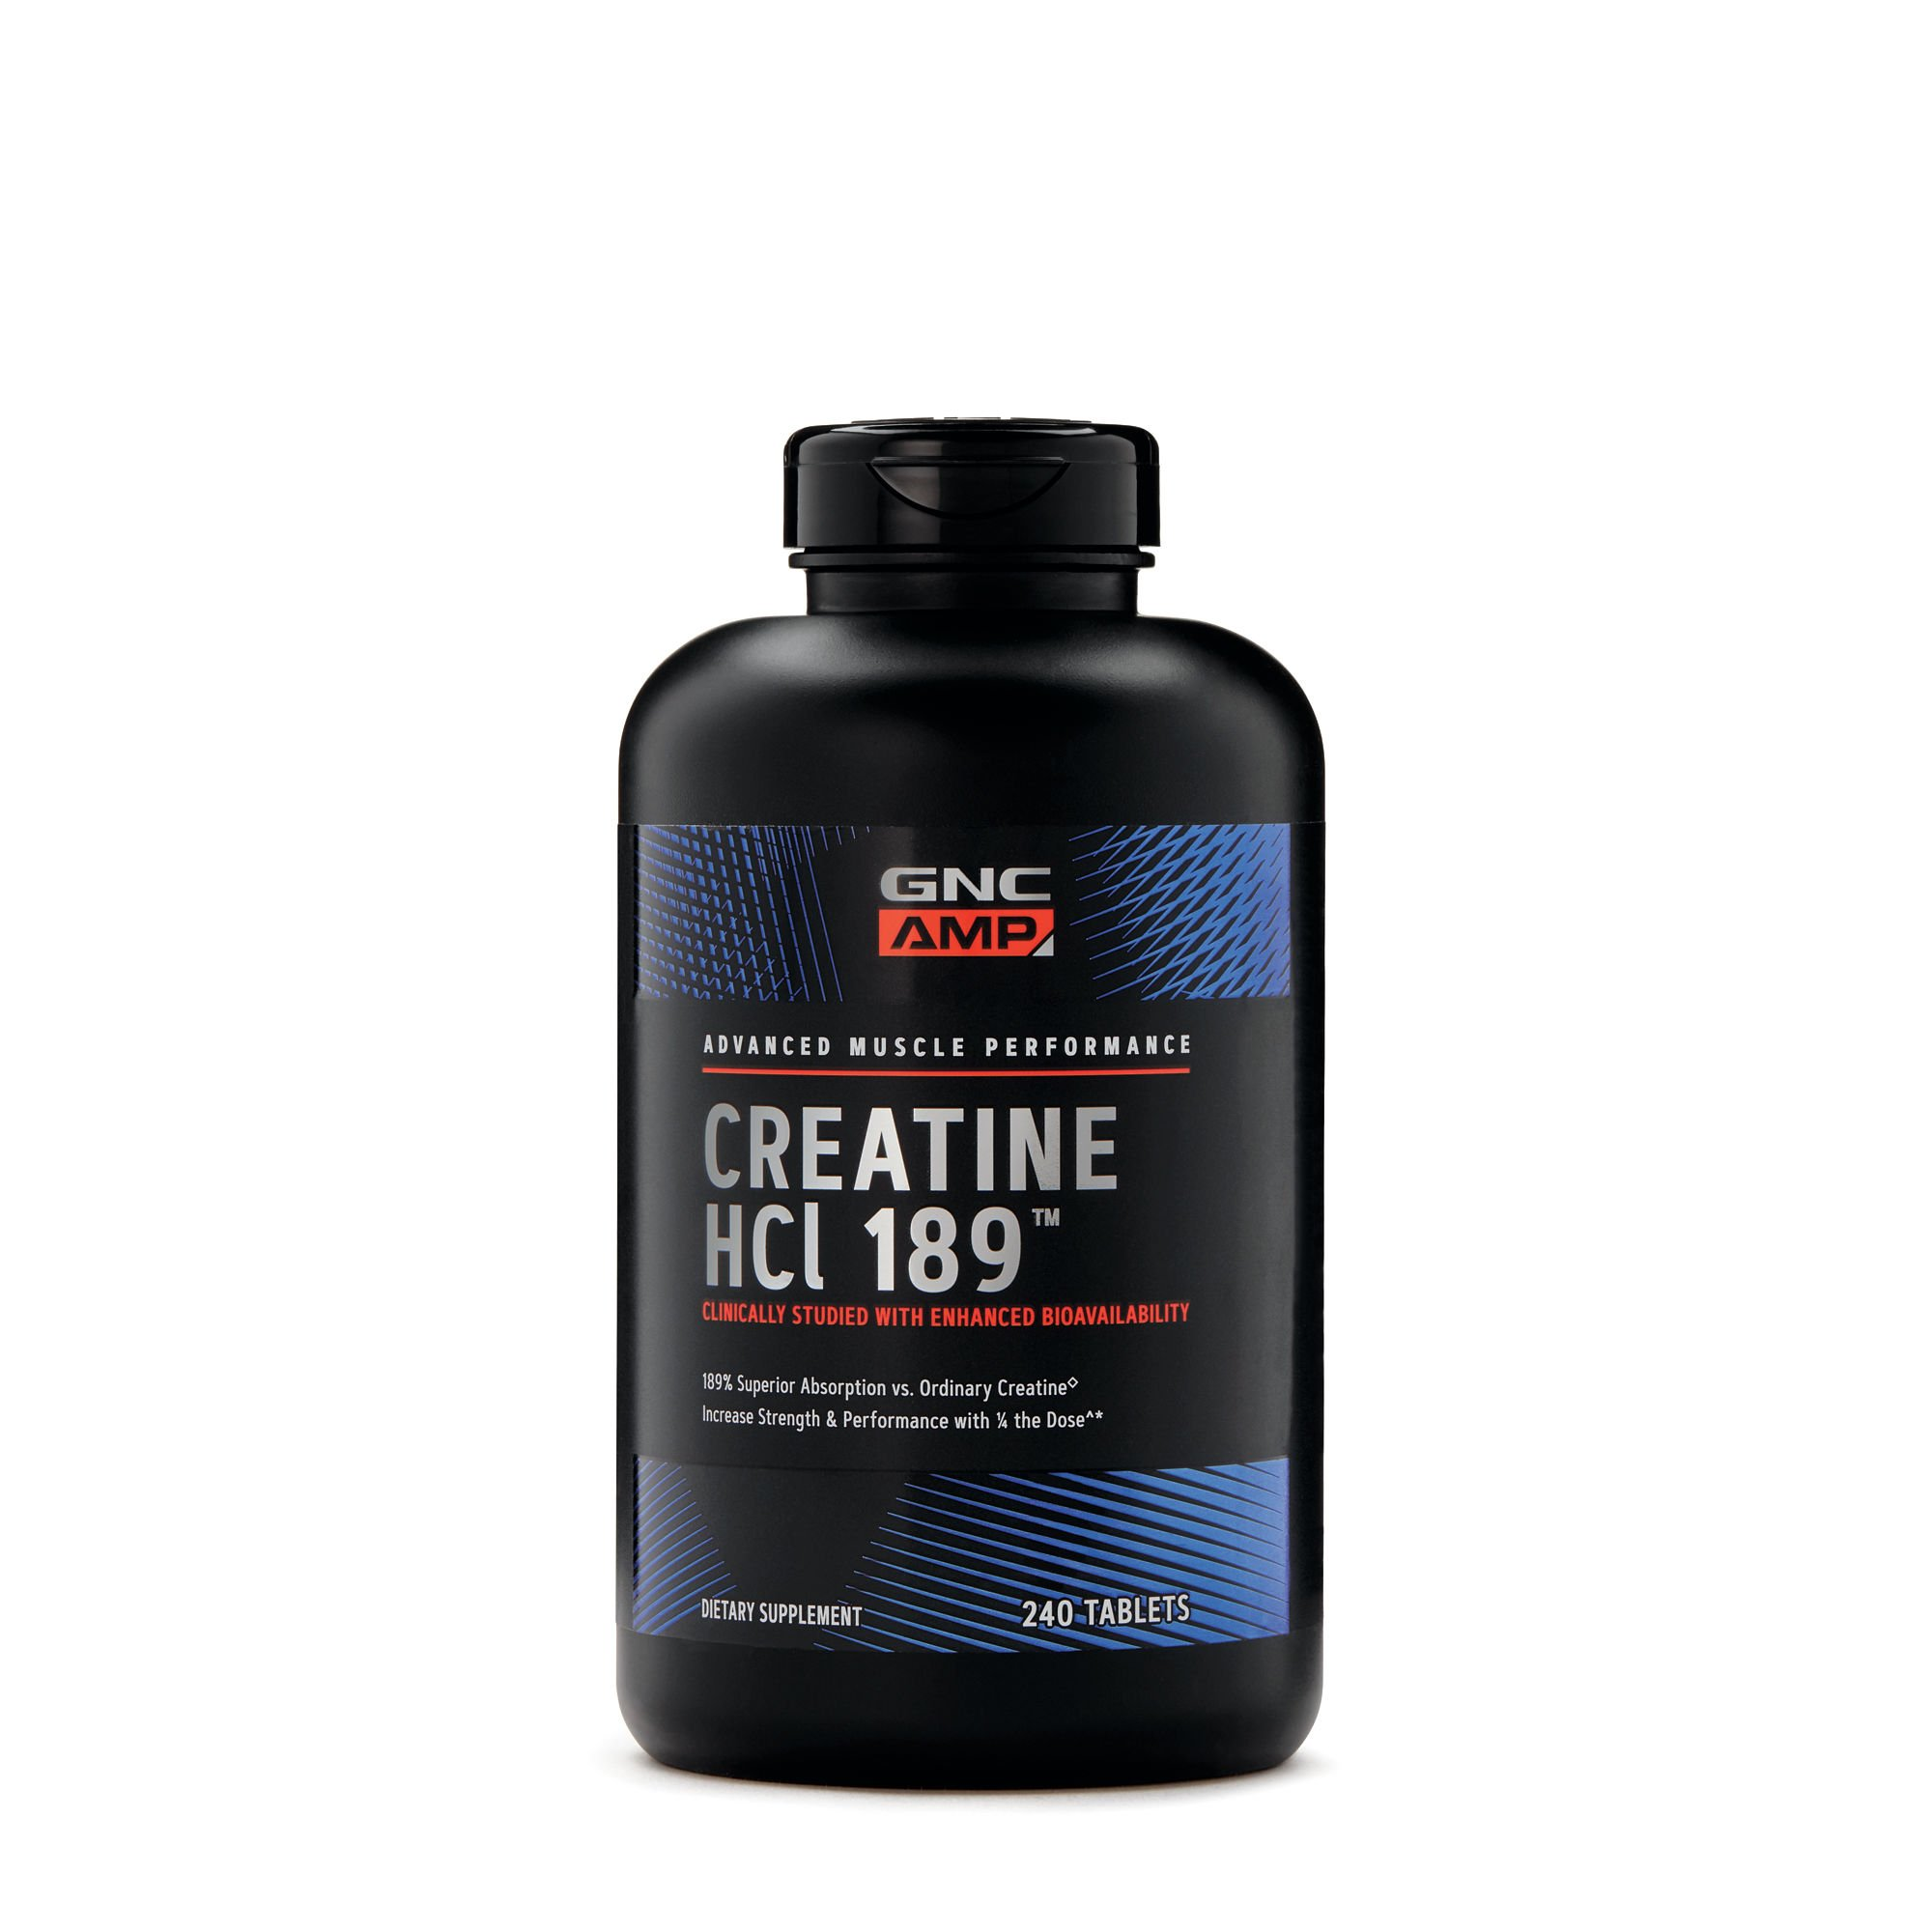 GNC AMP Creatine HCl 189 - Twin Pack by GNC (Image #3)